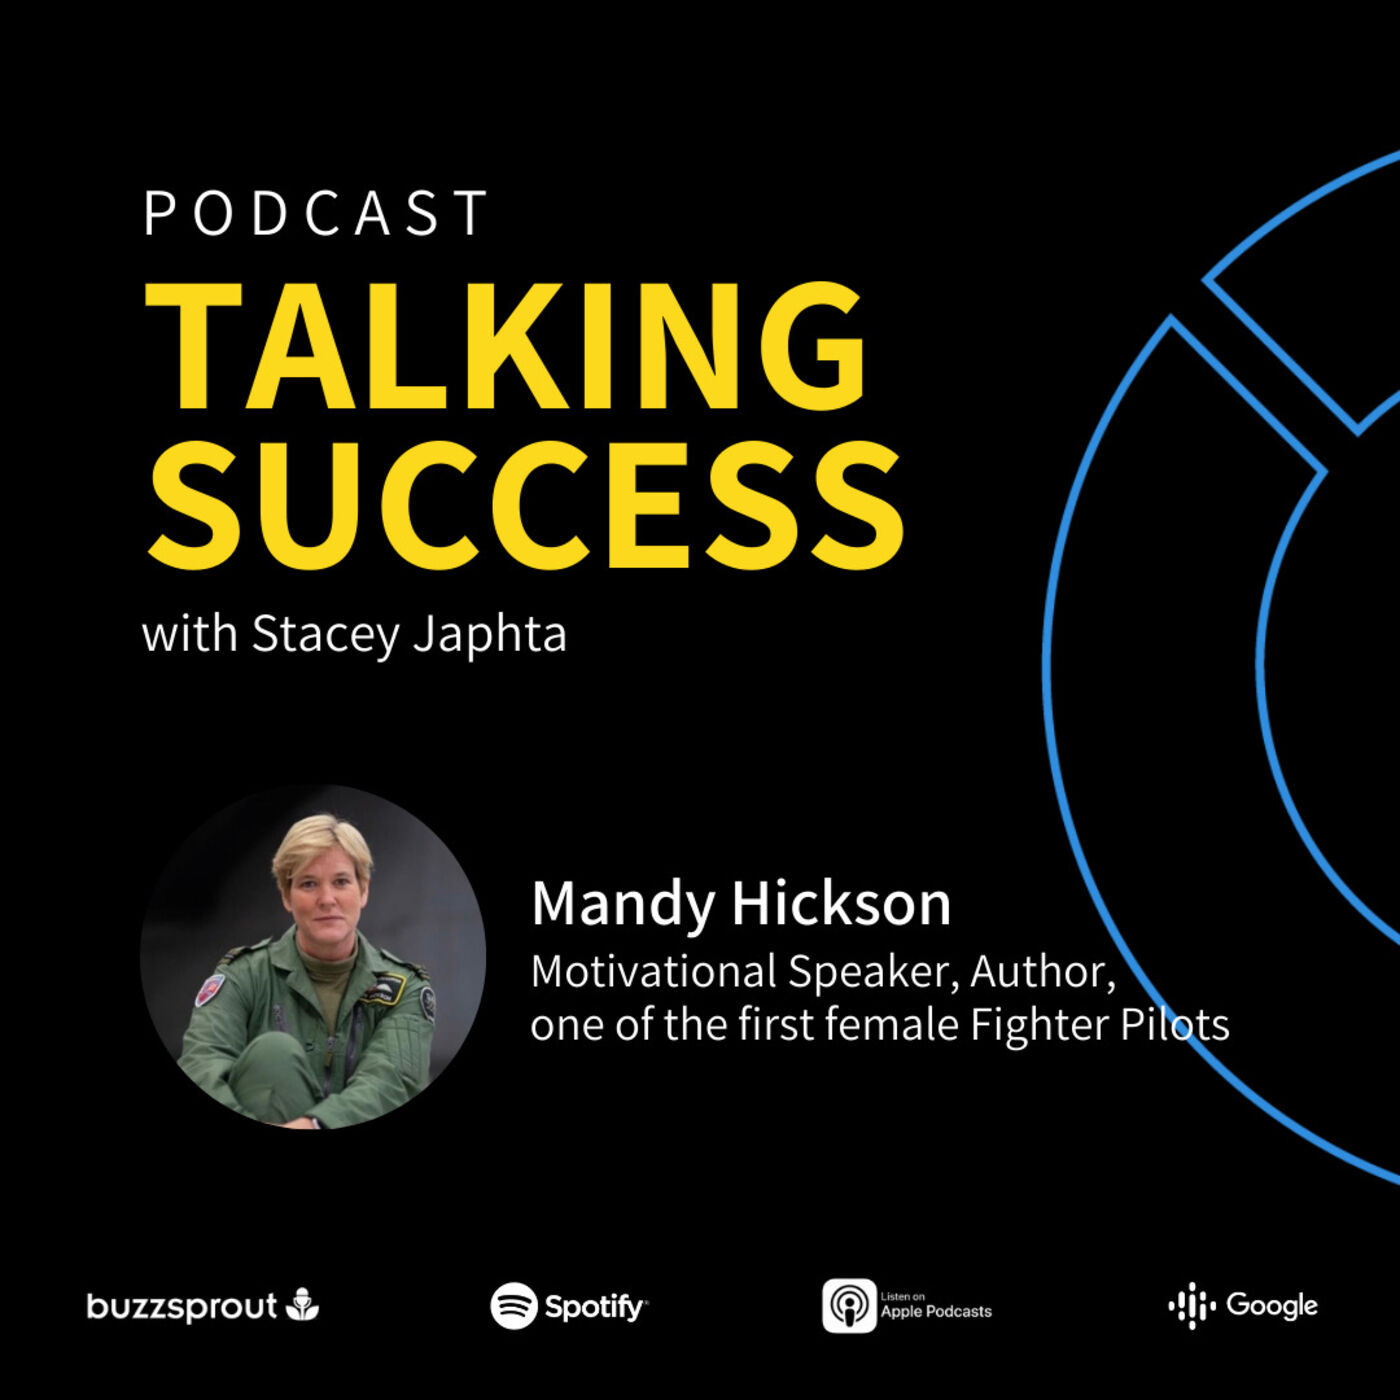 Mandy Hickson, Motivational Speaker, author, & one of the first female fighter pilots - How to improve communication with teams & tips on becoming a motivational speaker